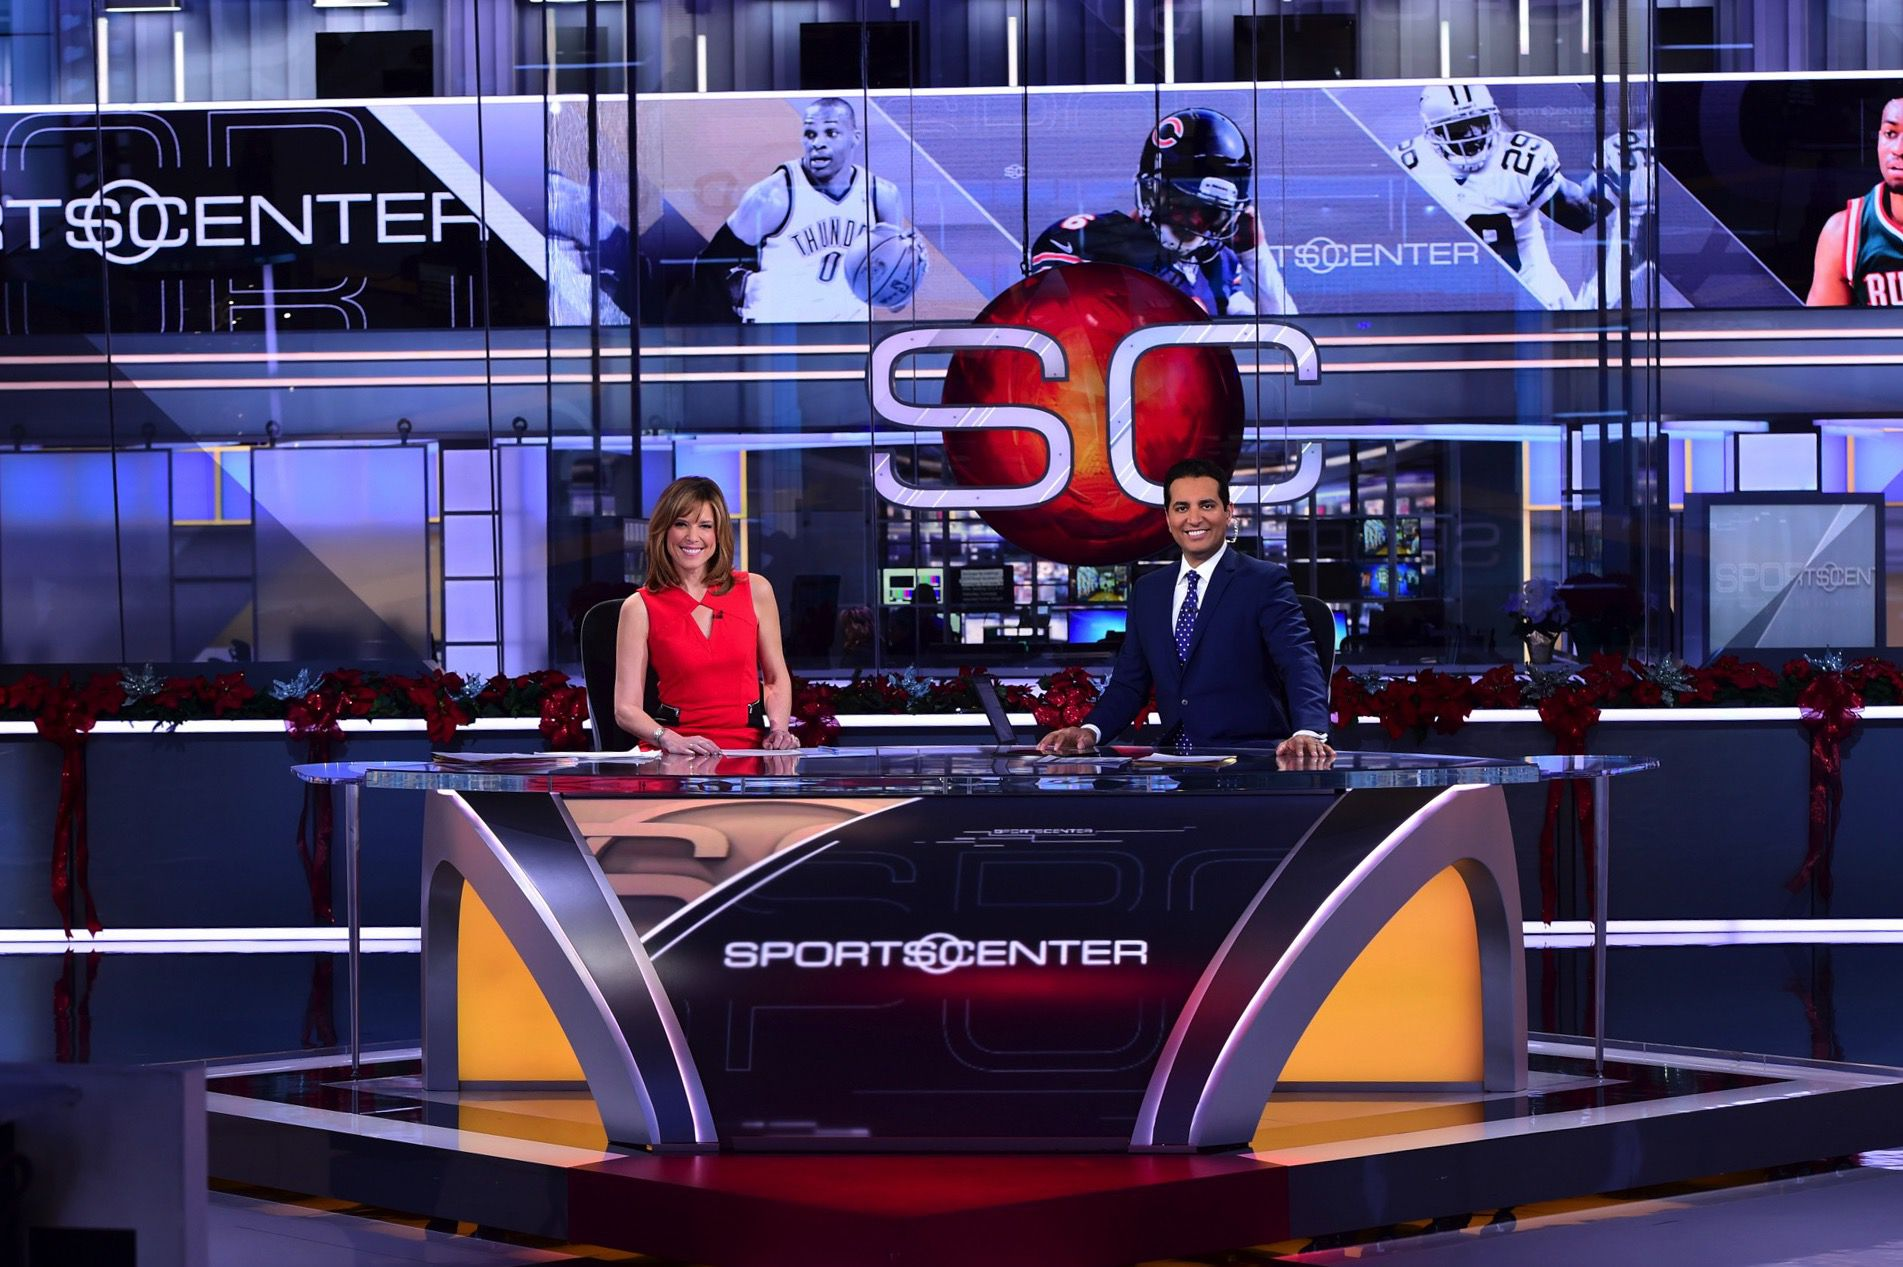 Inside The Studio Where Espn Is Betting Billions On The Future Of Sports The Verge